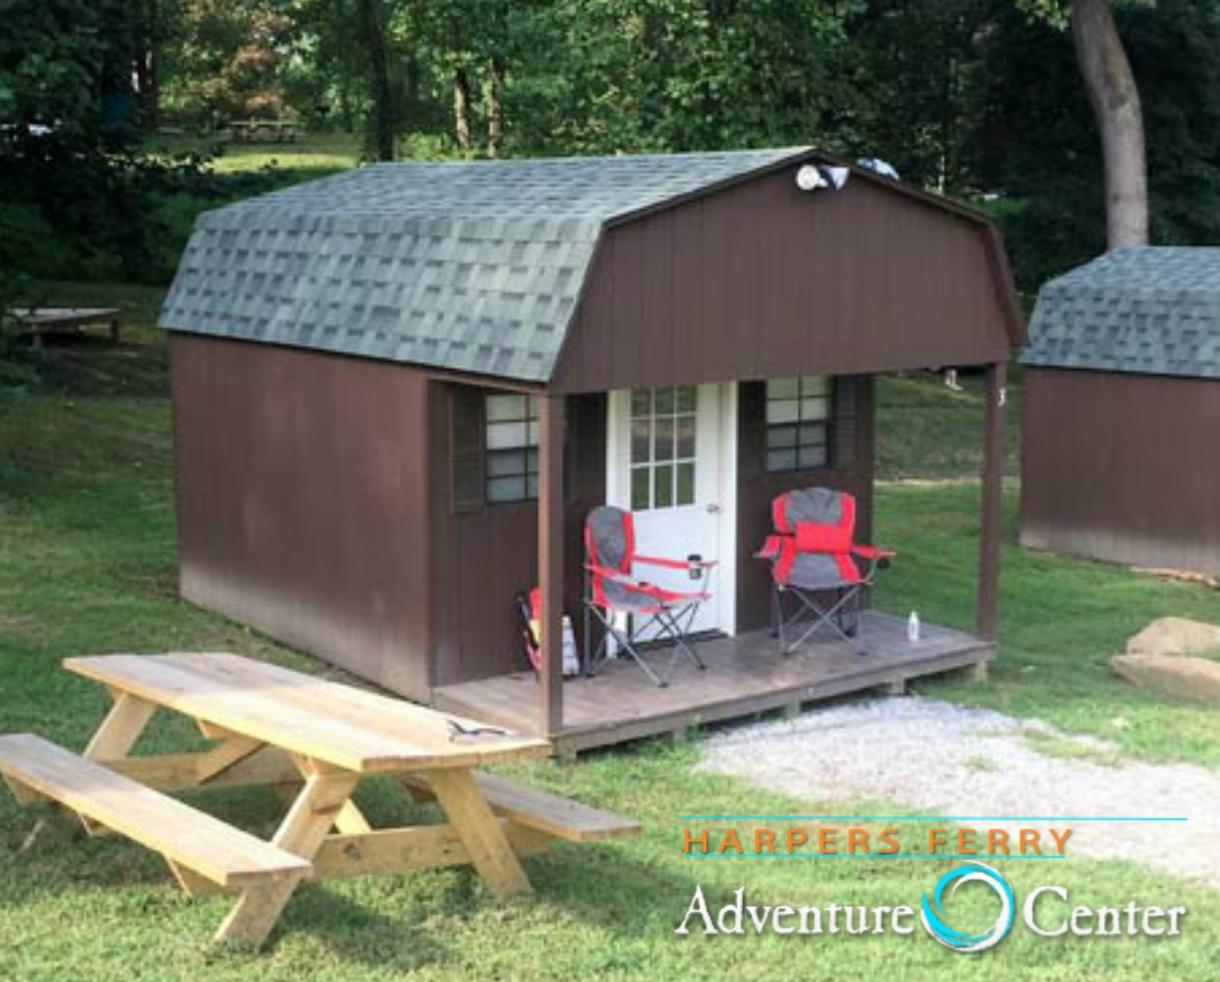 $67+ for One-Night Cabin Stay at Harpers Ferry Adventure Center - Purcellville, VA (Up to 30% Off)